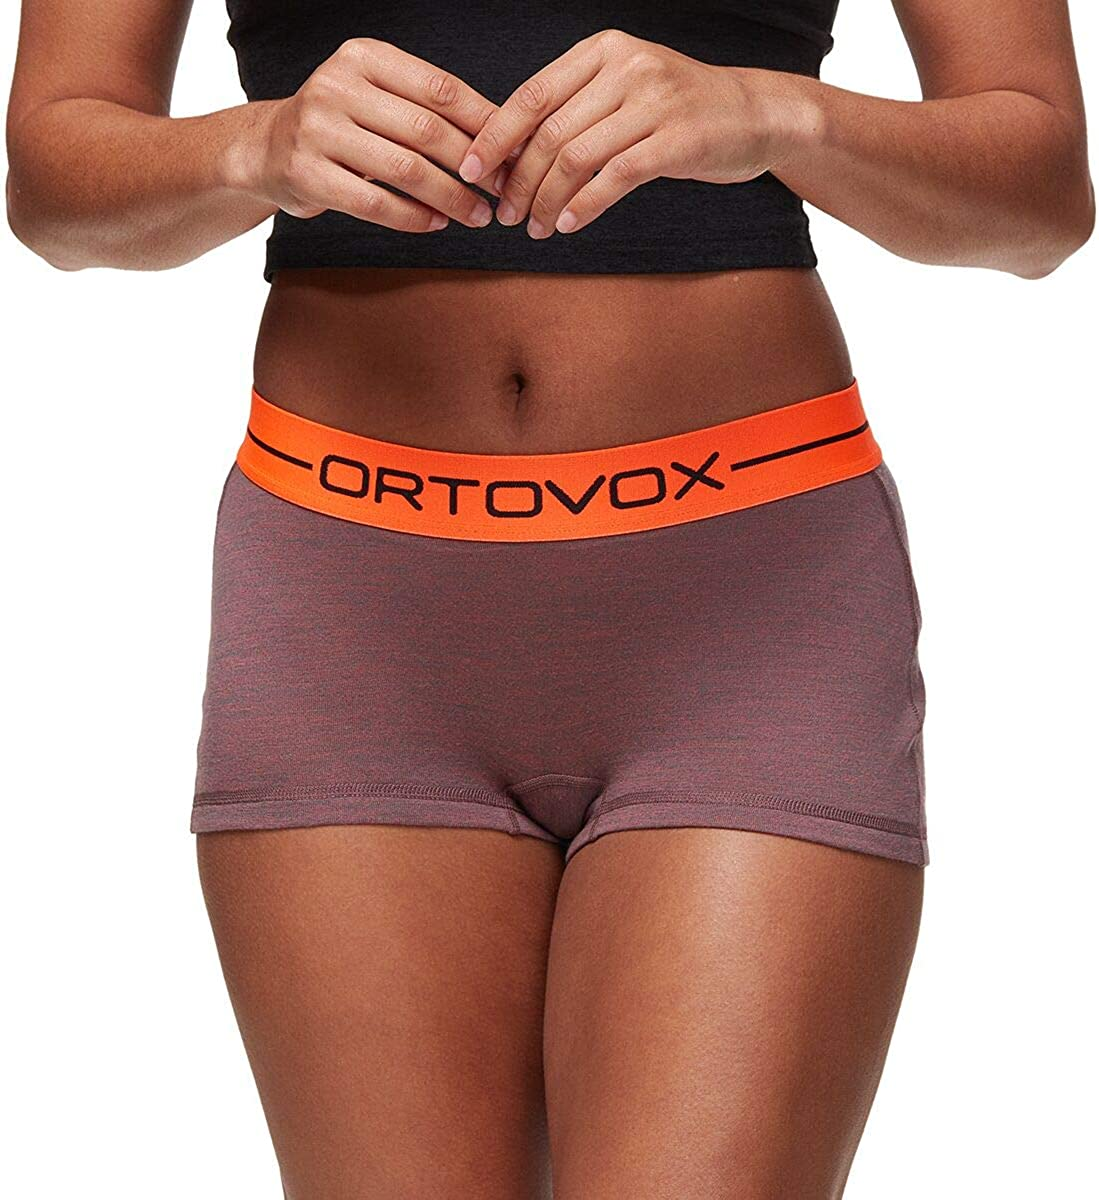 Limited time for free Recommended shipping Ortovox Merino 185 Rock'N'Wool - Women's Hot Pant